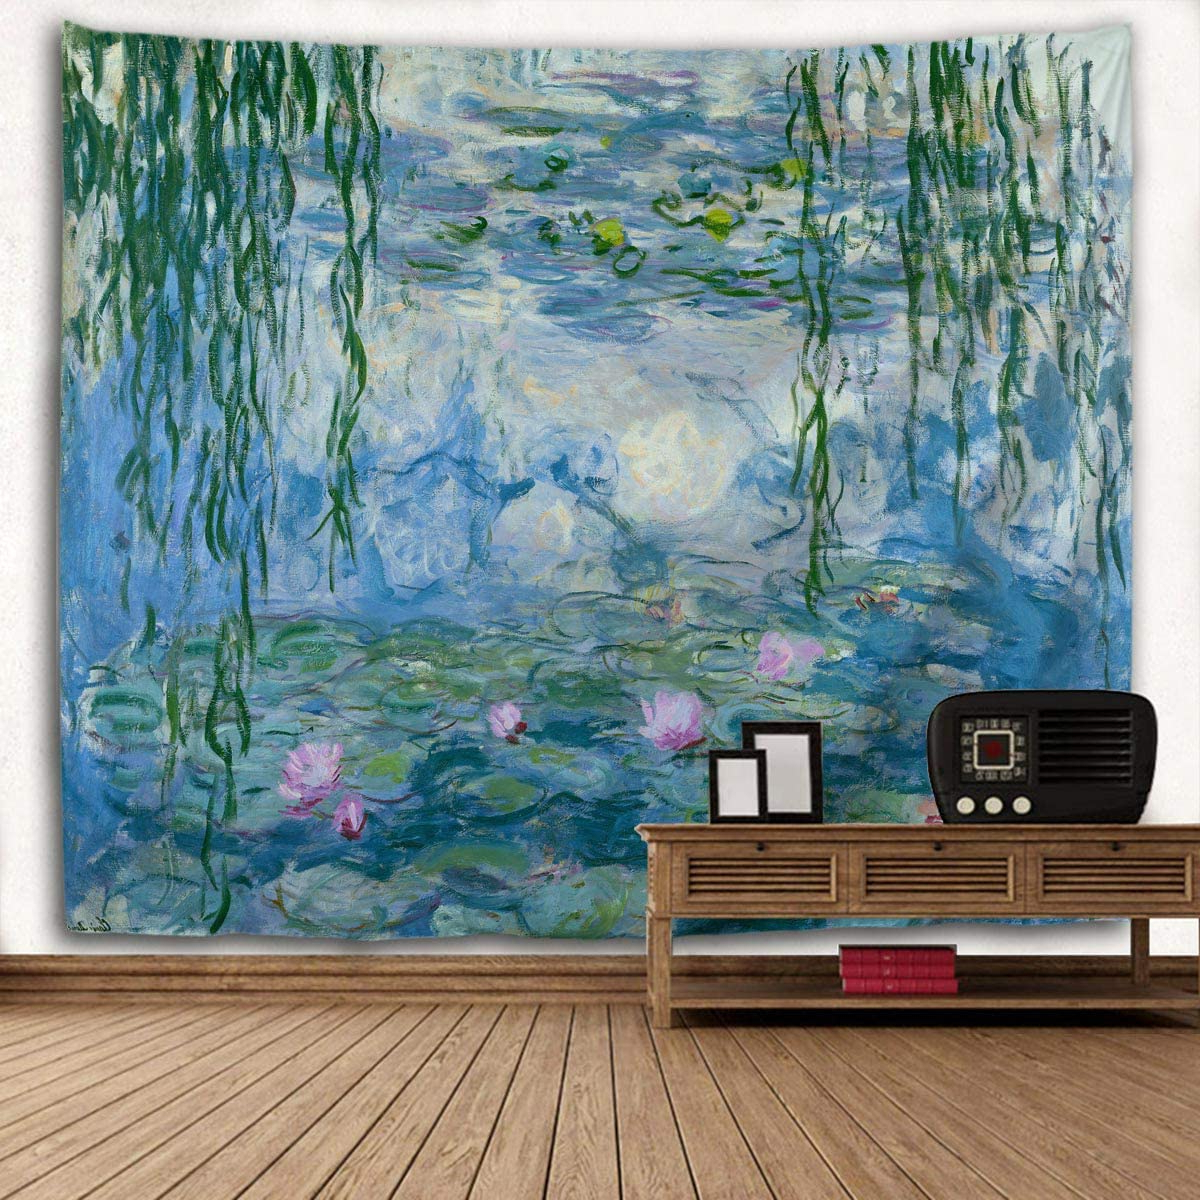 2019 Blended Fabric Spring Party Wall Hangings Regarding Large Tapestry Monet Wall Tapestry Water Lilies Oil Paintings Flowers Tapestry Wall Hanging Art Home Decor For Living Room Bedroom Bathroom Kitchen (View 14 of 20)